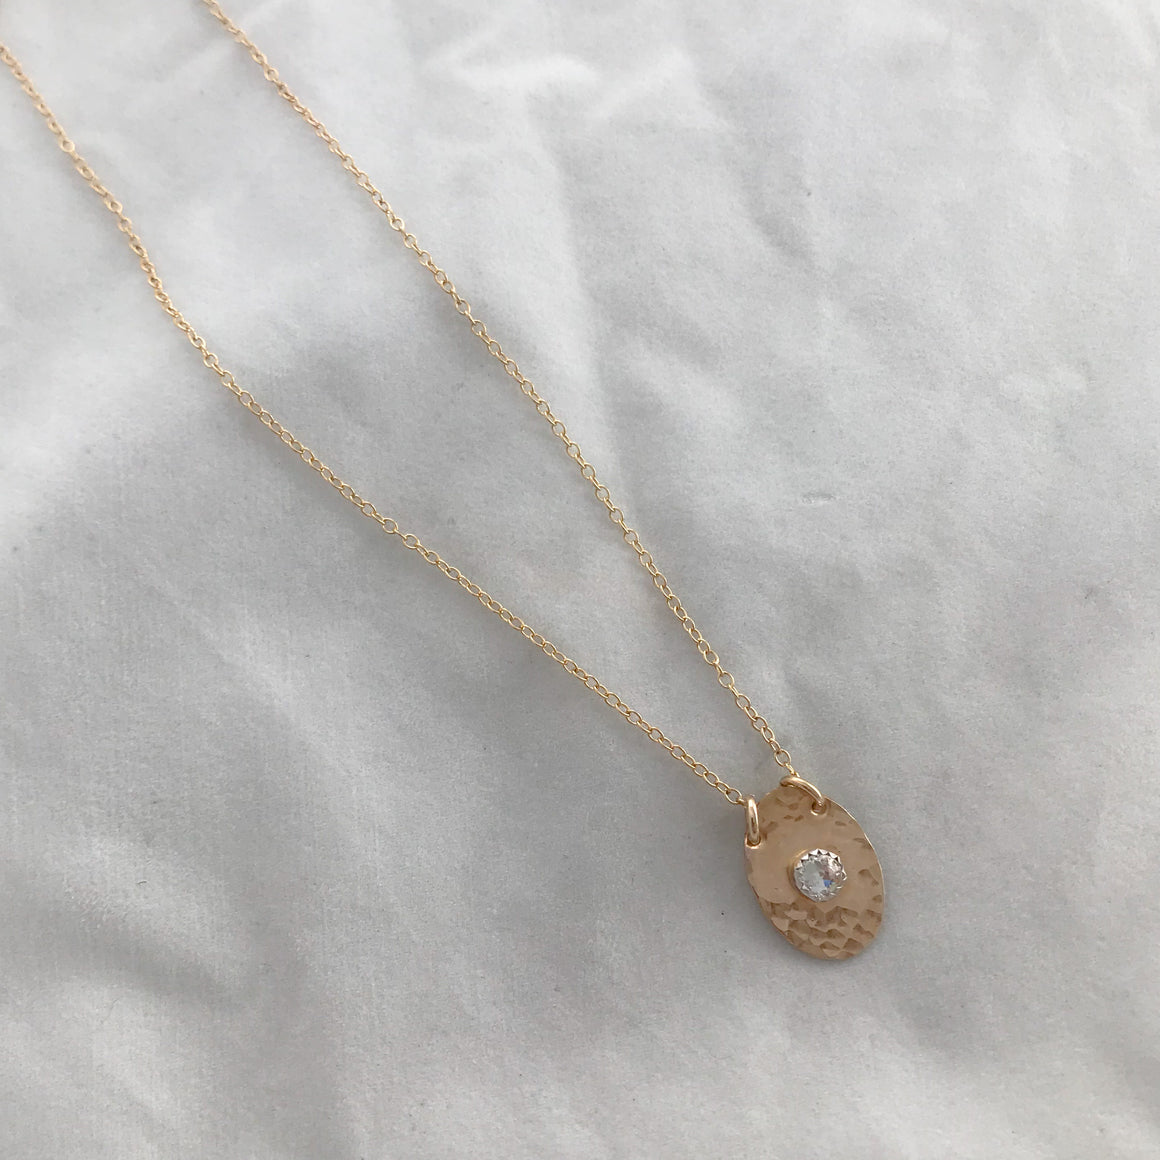 Oval Birthstone Necklace